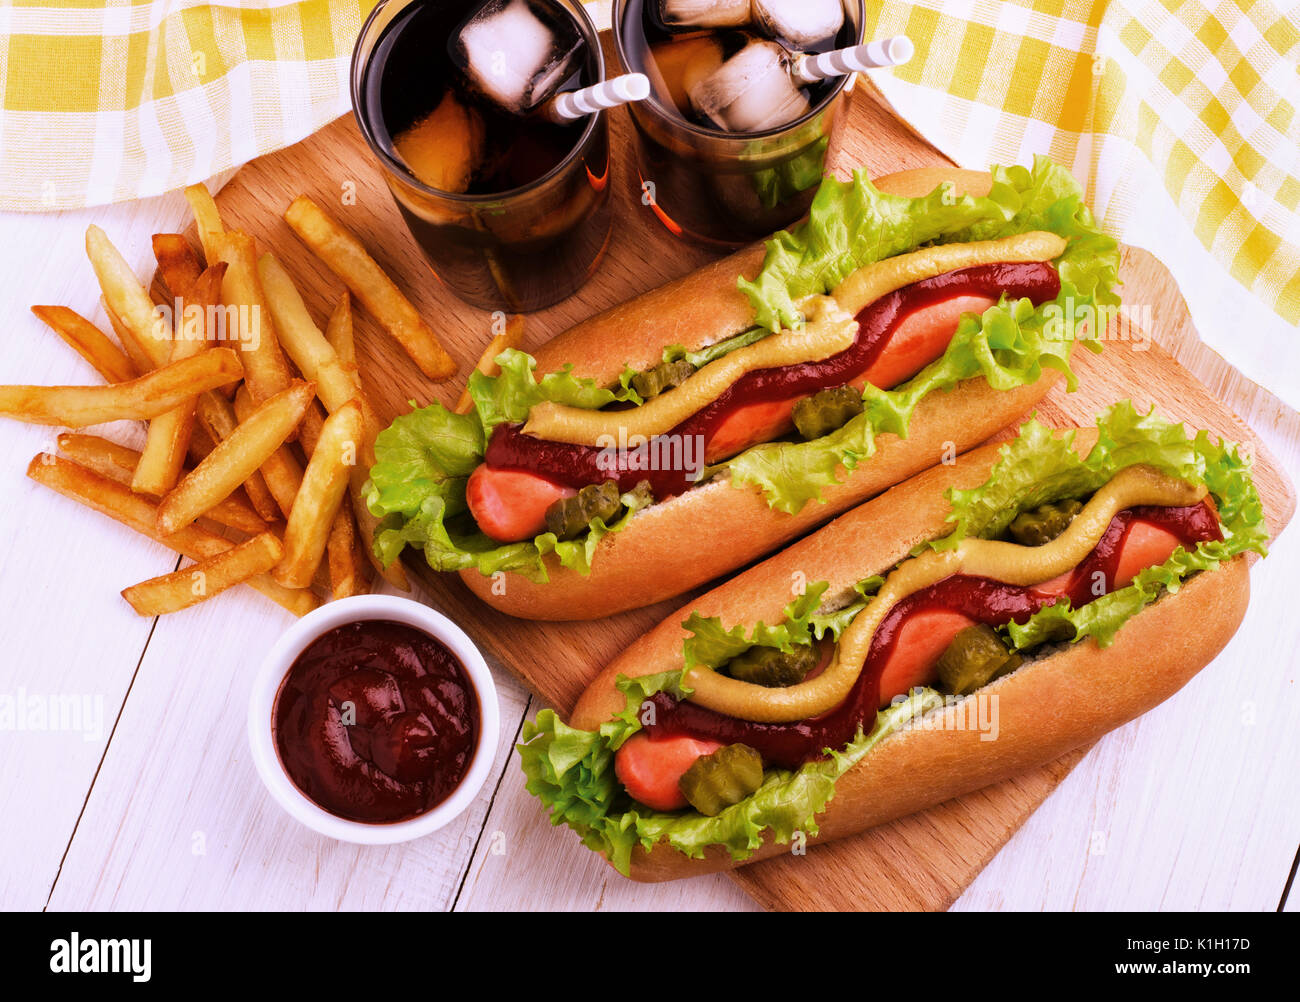 Hot dogs, potato wedges and cola on wooden board, top view. Fast food. - Stock Image